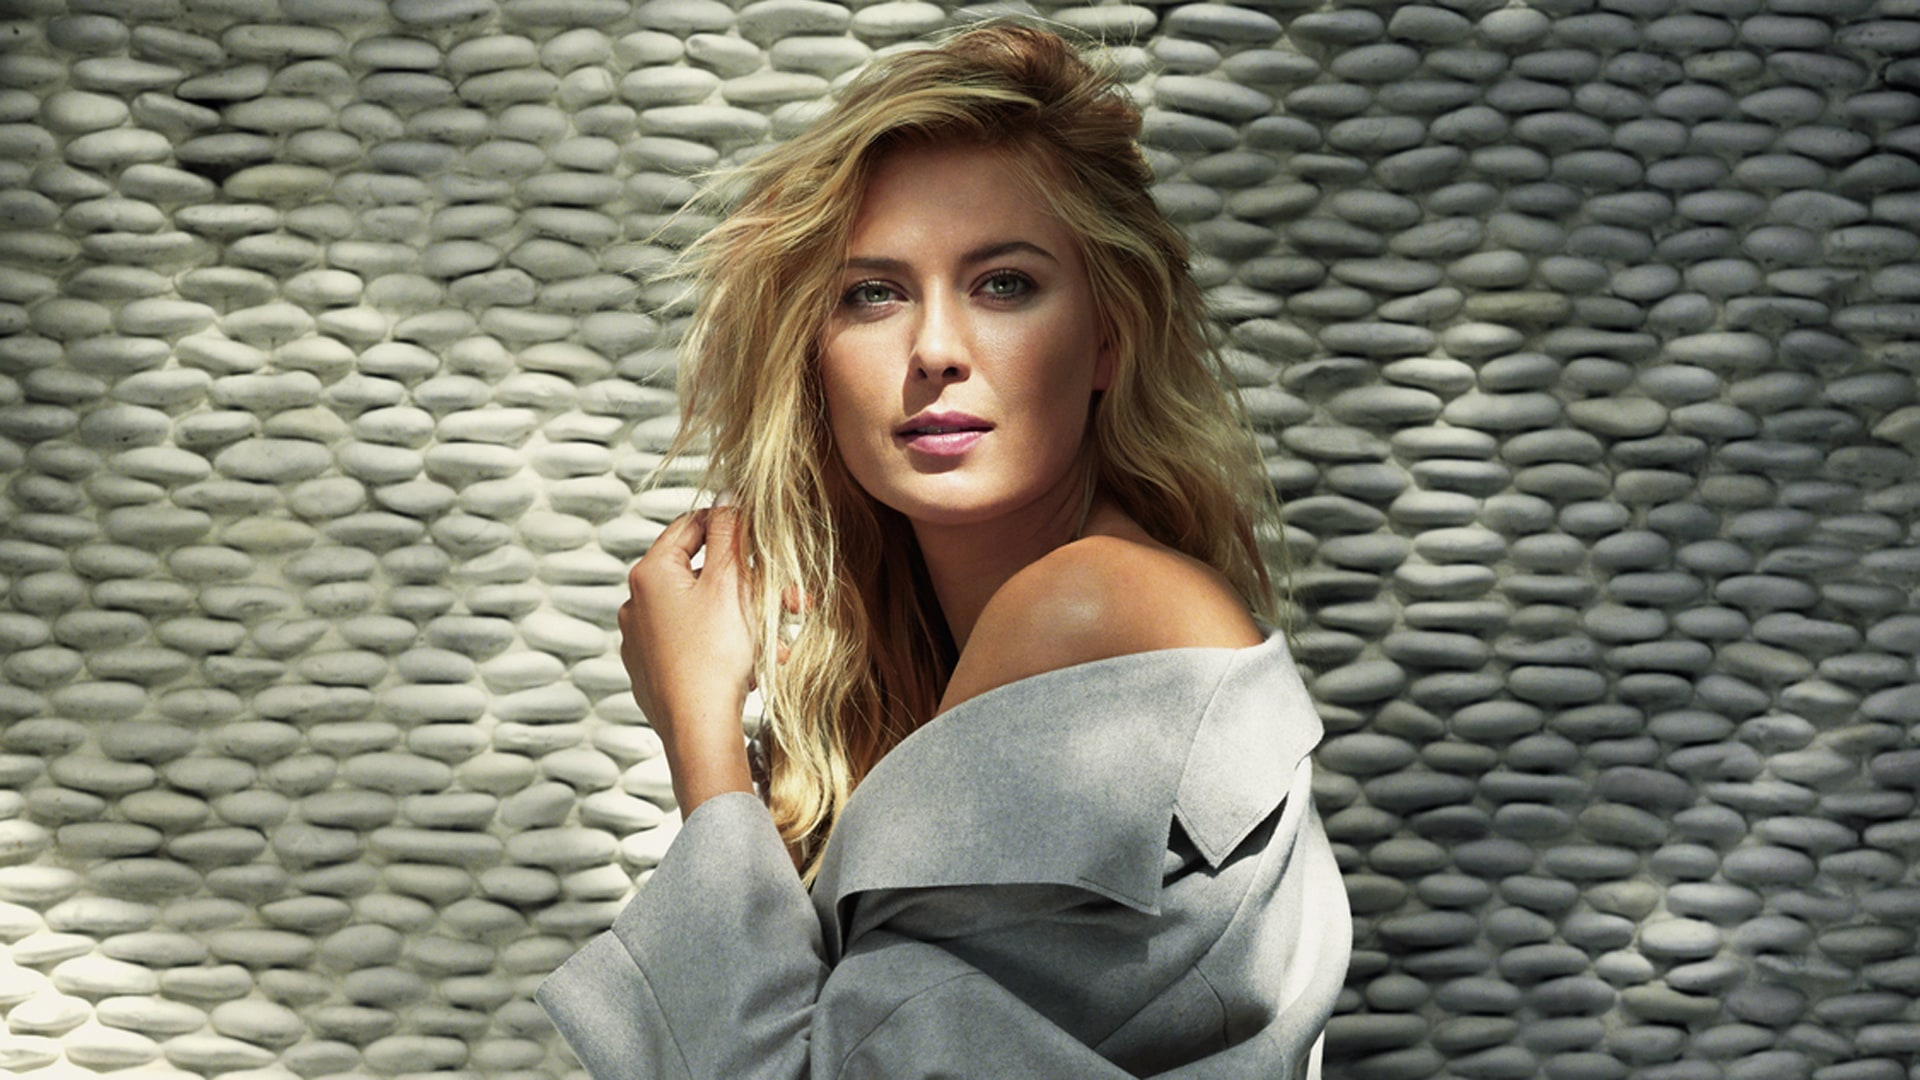 Maria Sharapova Wallpaper 2   1920 X 1080 stmednet 1920x1080